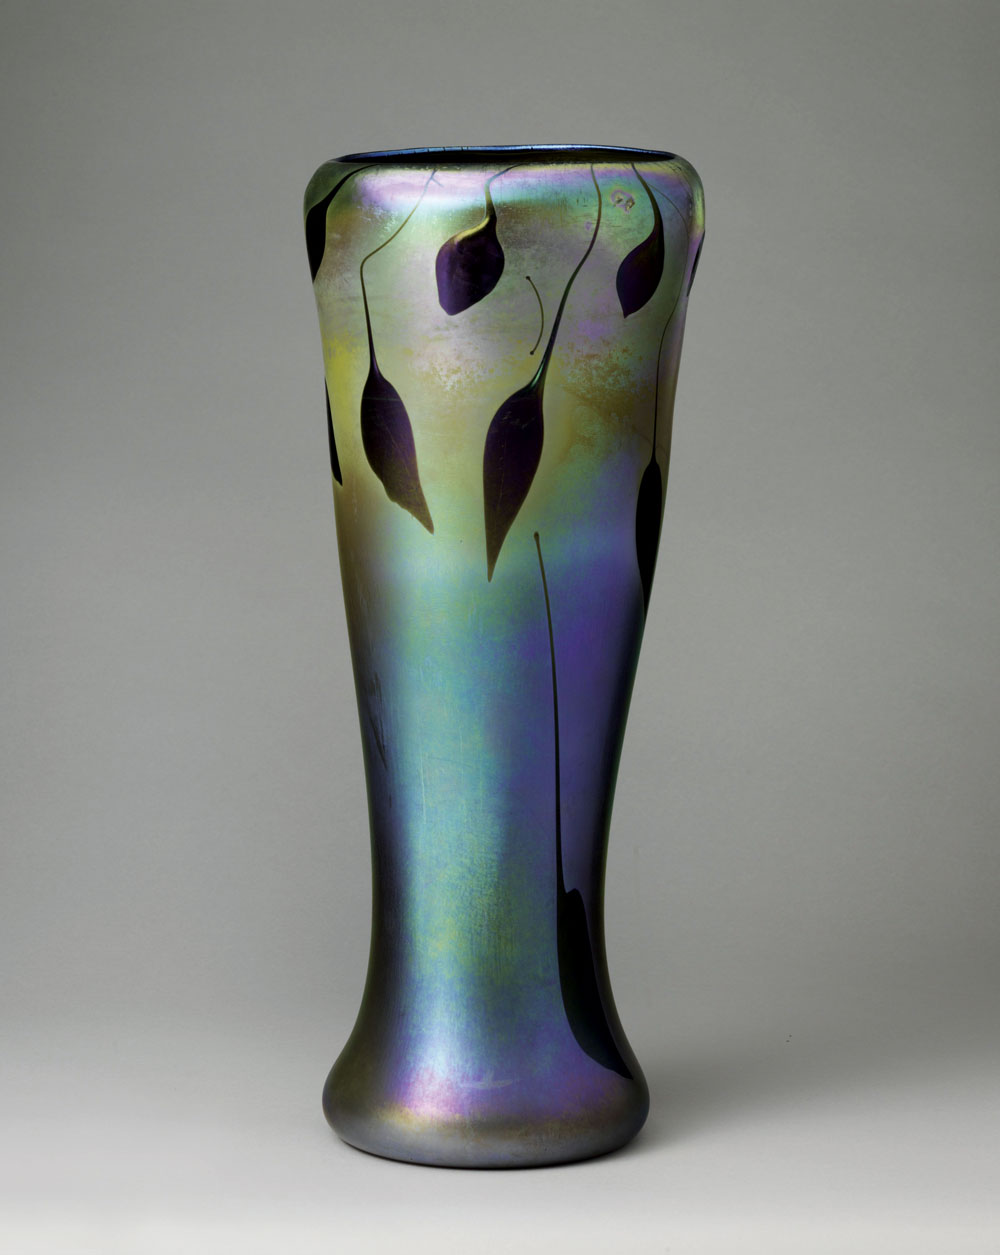 Louis comfort tiffany and laurelton hall incollect 6 vase louis comfort tiffany 18481933 tiffany glass and decorating company or tiffany furnaces circa 19001915 favrile glass 23 x 9 38 in reviewsmspy